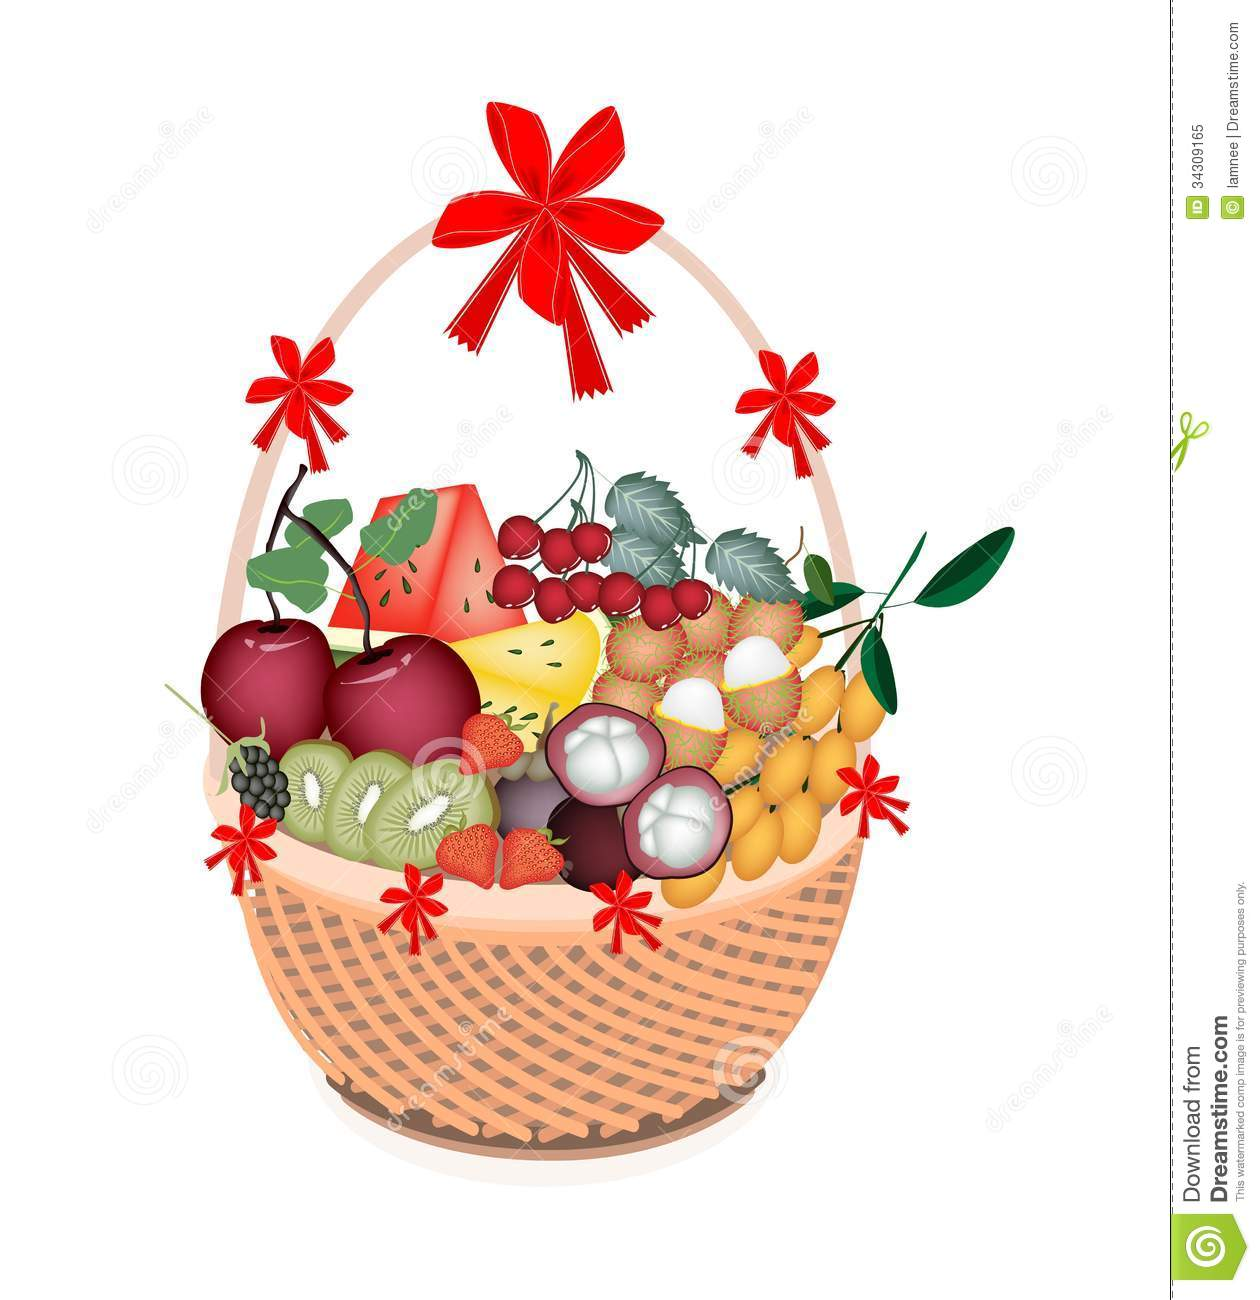 Clip Art Christmas Basket : Gift basket cartoon clipart suggest